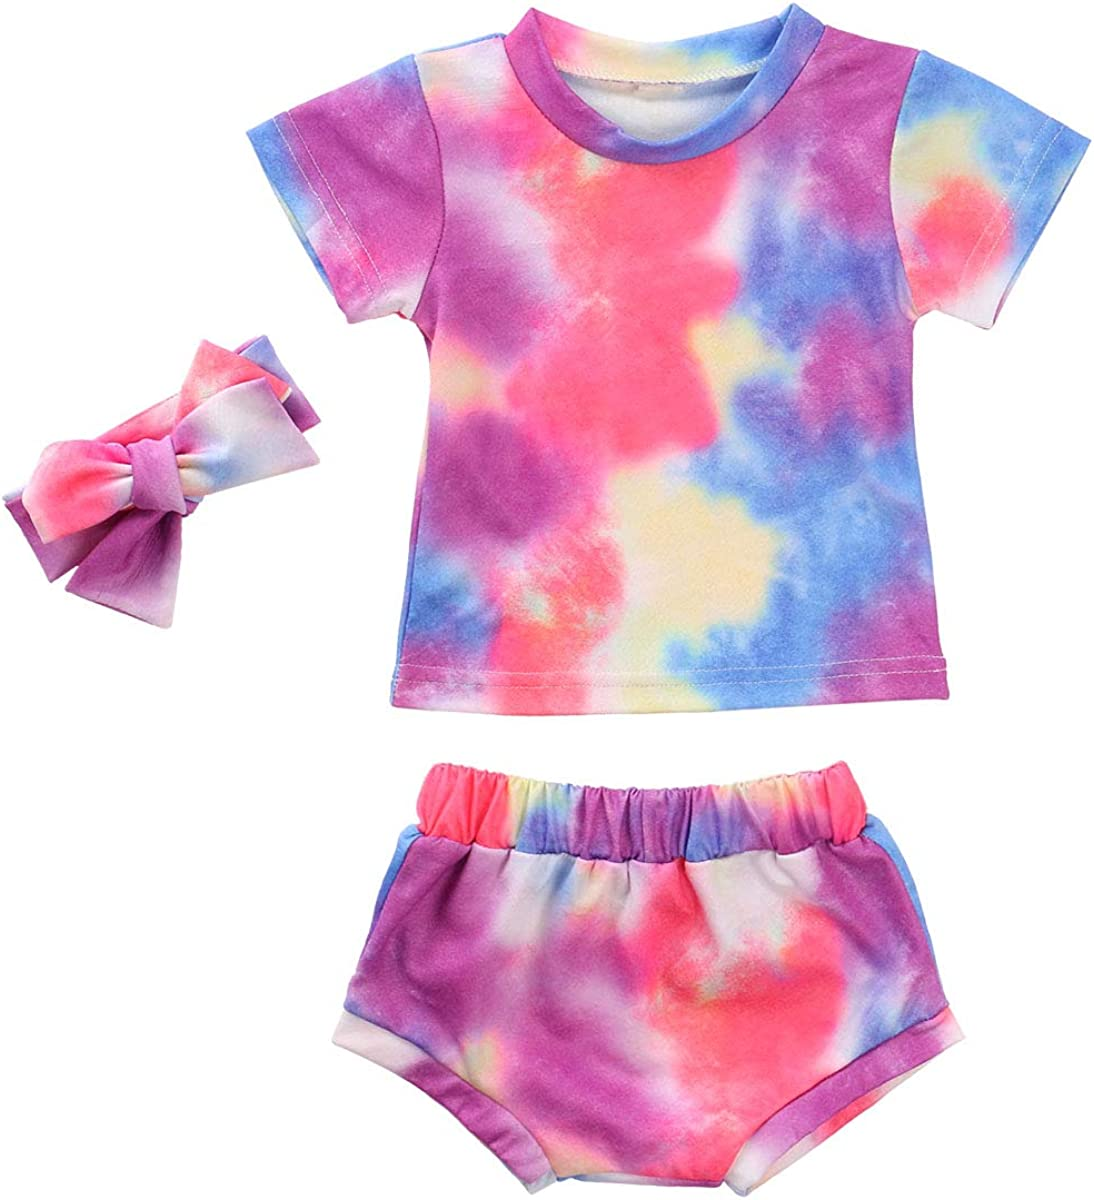 Toddler Infant Baby Girl Tie Dye Clothes T- Shirts Tops and Shor